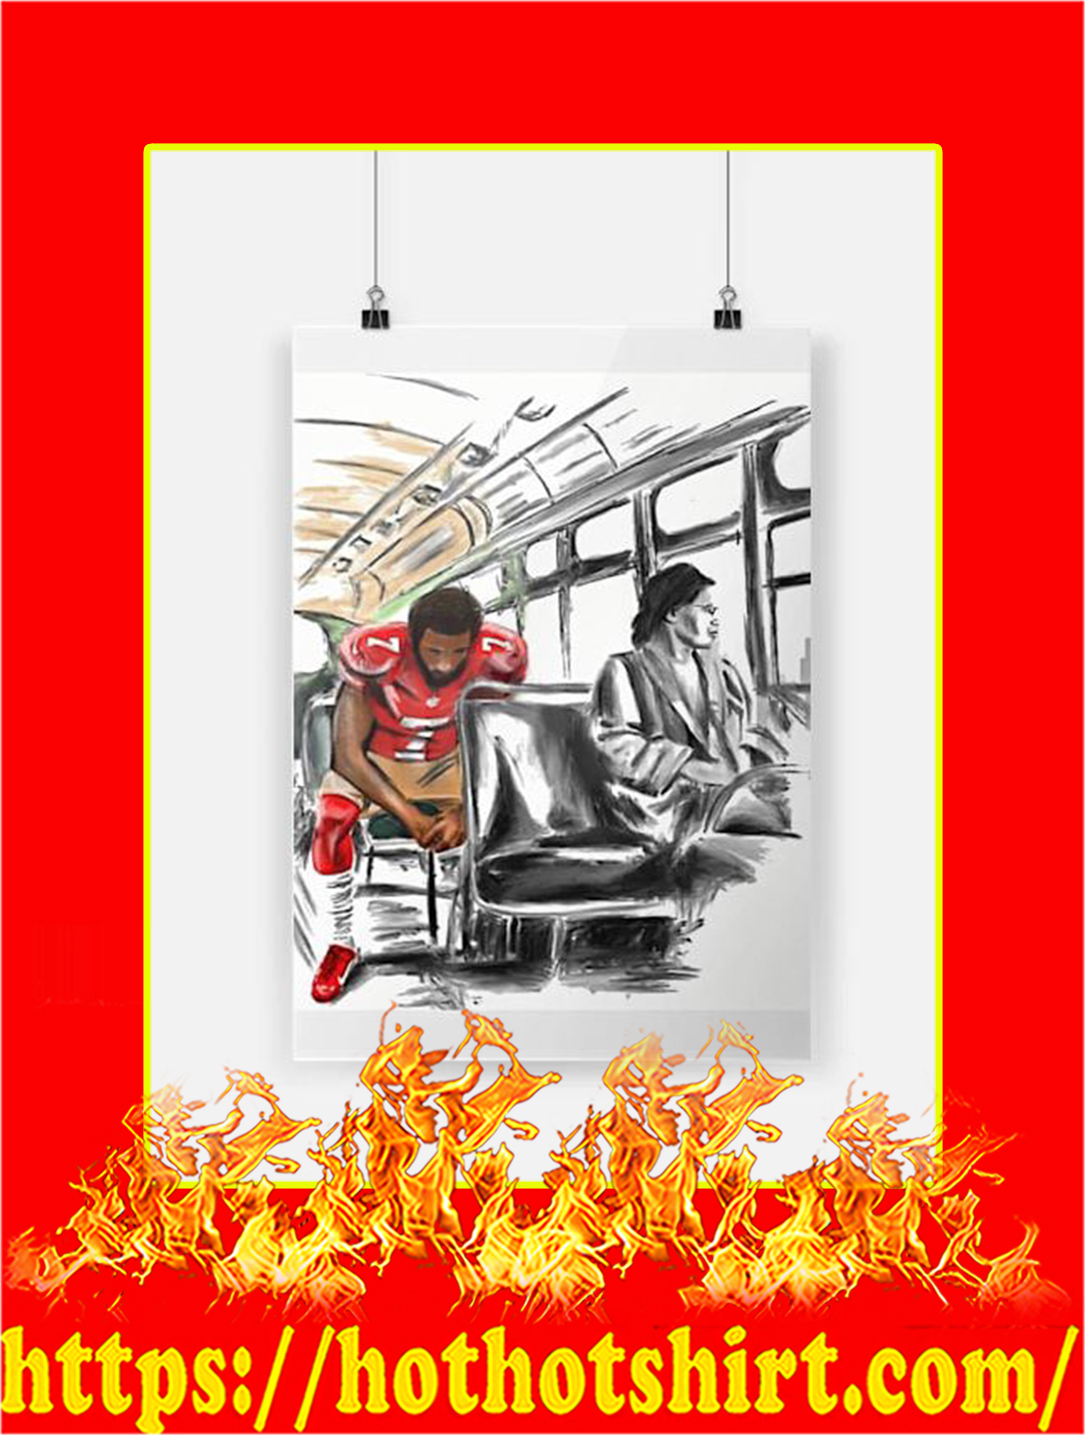 Rosa Parks And Colin Kaepernick On The Bus Poster - A3